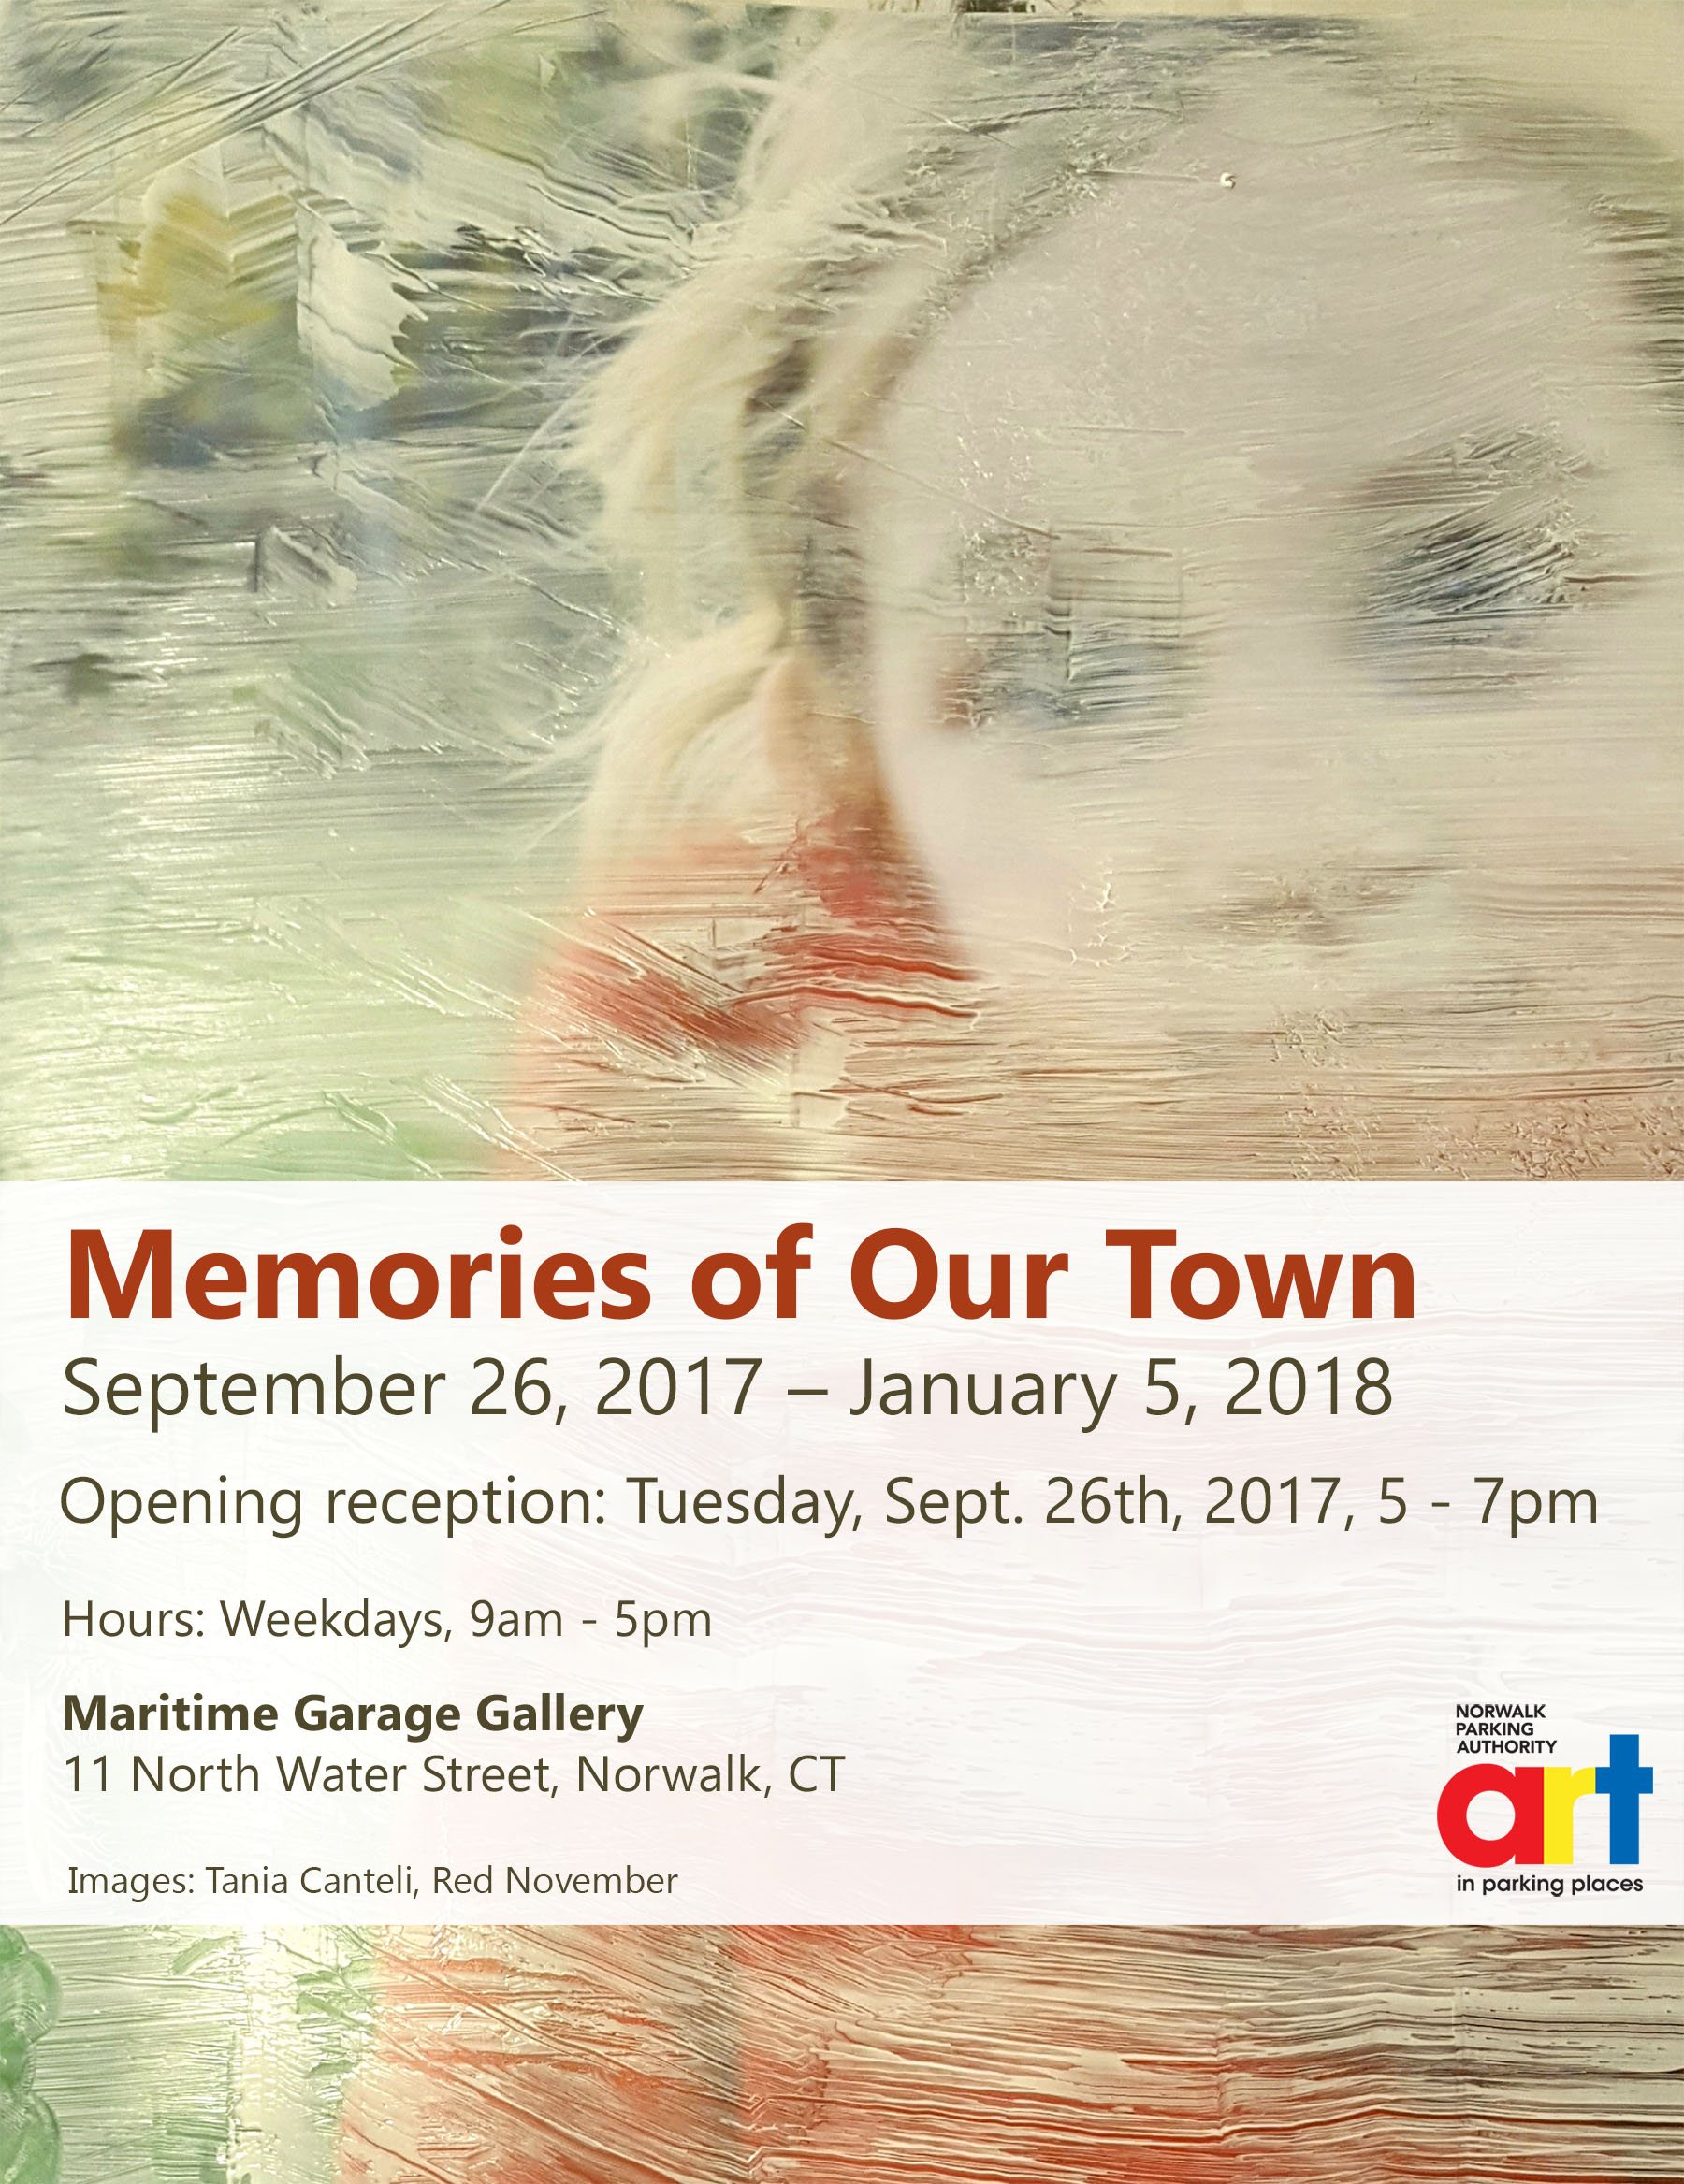 Memories of Our Town, invite, Curator Nadia Martinez Faculty New York School of the Arts.jpg